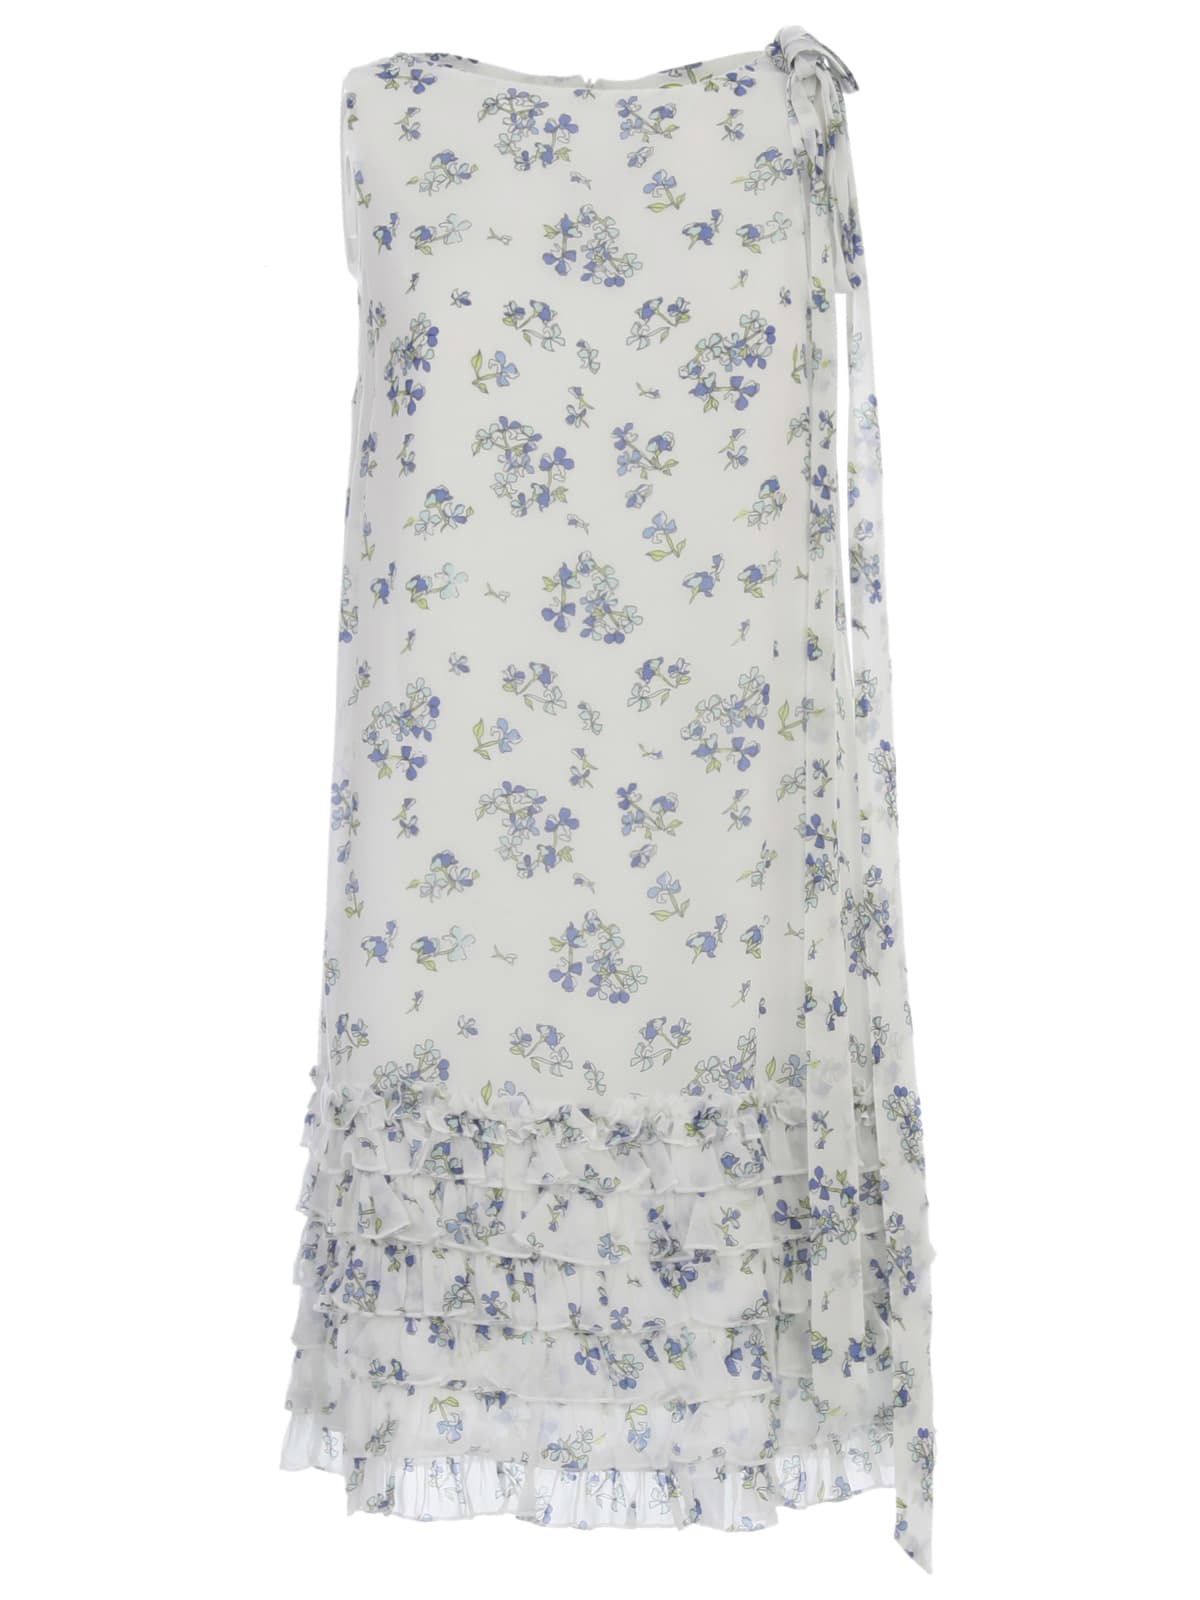 Buy Be Blumarine Dress W/s Crew Neck Voille online, shop Be Blumarine with free shipping